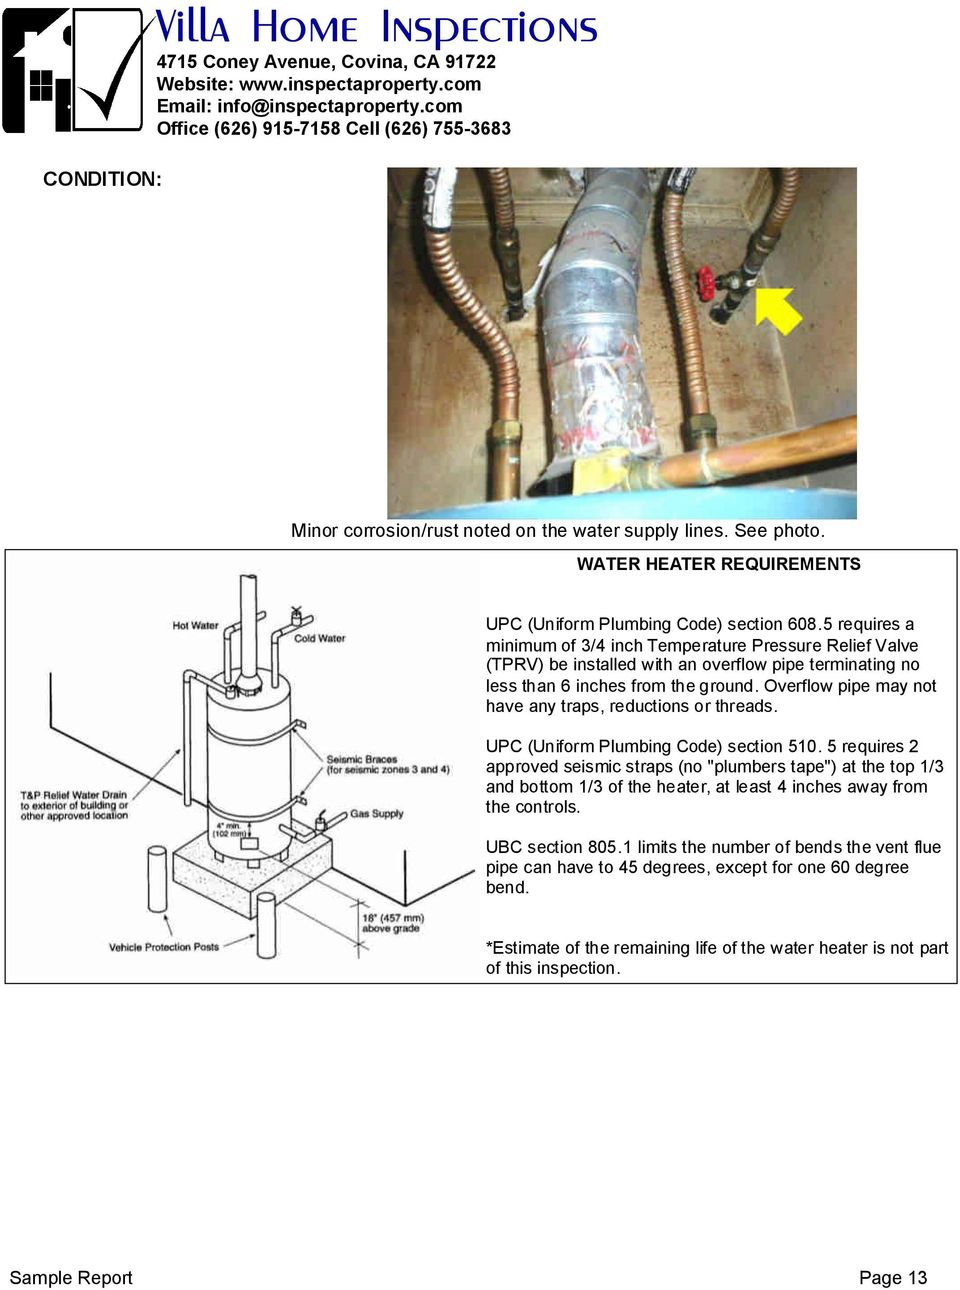 Overflow pipe may not have any traps, reductions or threads. UPC (Uniform Plumbing Code) section 510.